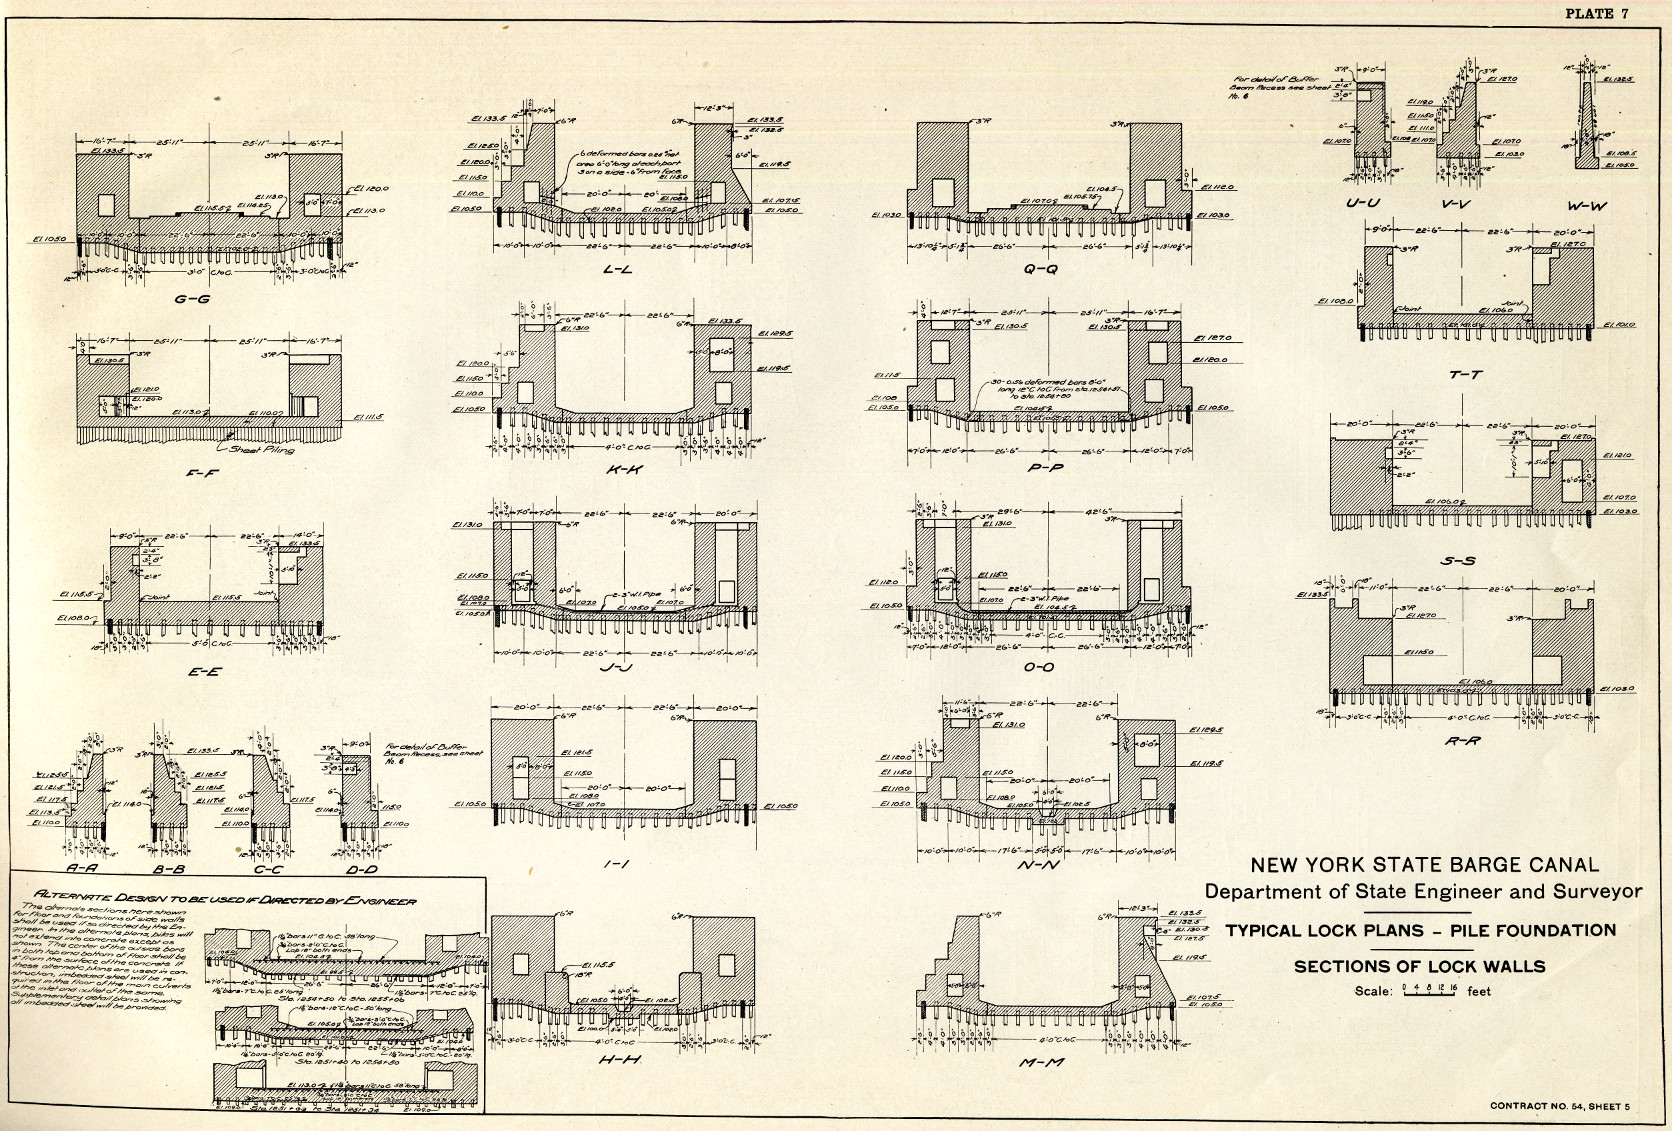 Vogelhaus Selber Bauen also Granny Pod Ideas Backyard also Renzo Piano Building Workshop Stavros Niarchos Foundation Cultural Center Athens 06 24 2016 as well Cuisine  C3 A0 Aire Ouverte likewise 635457. on pinterest house plans for 2017